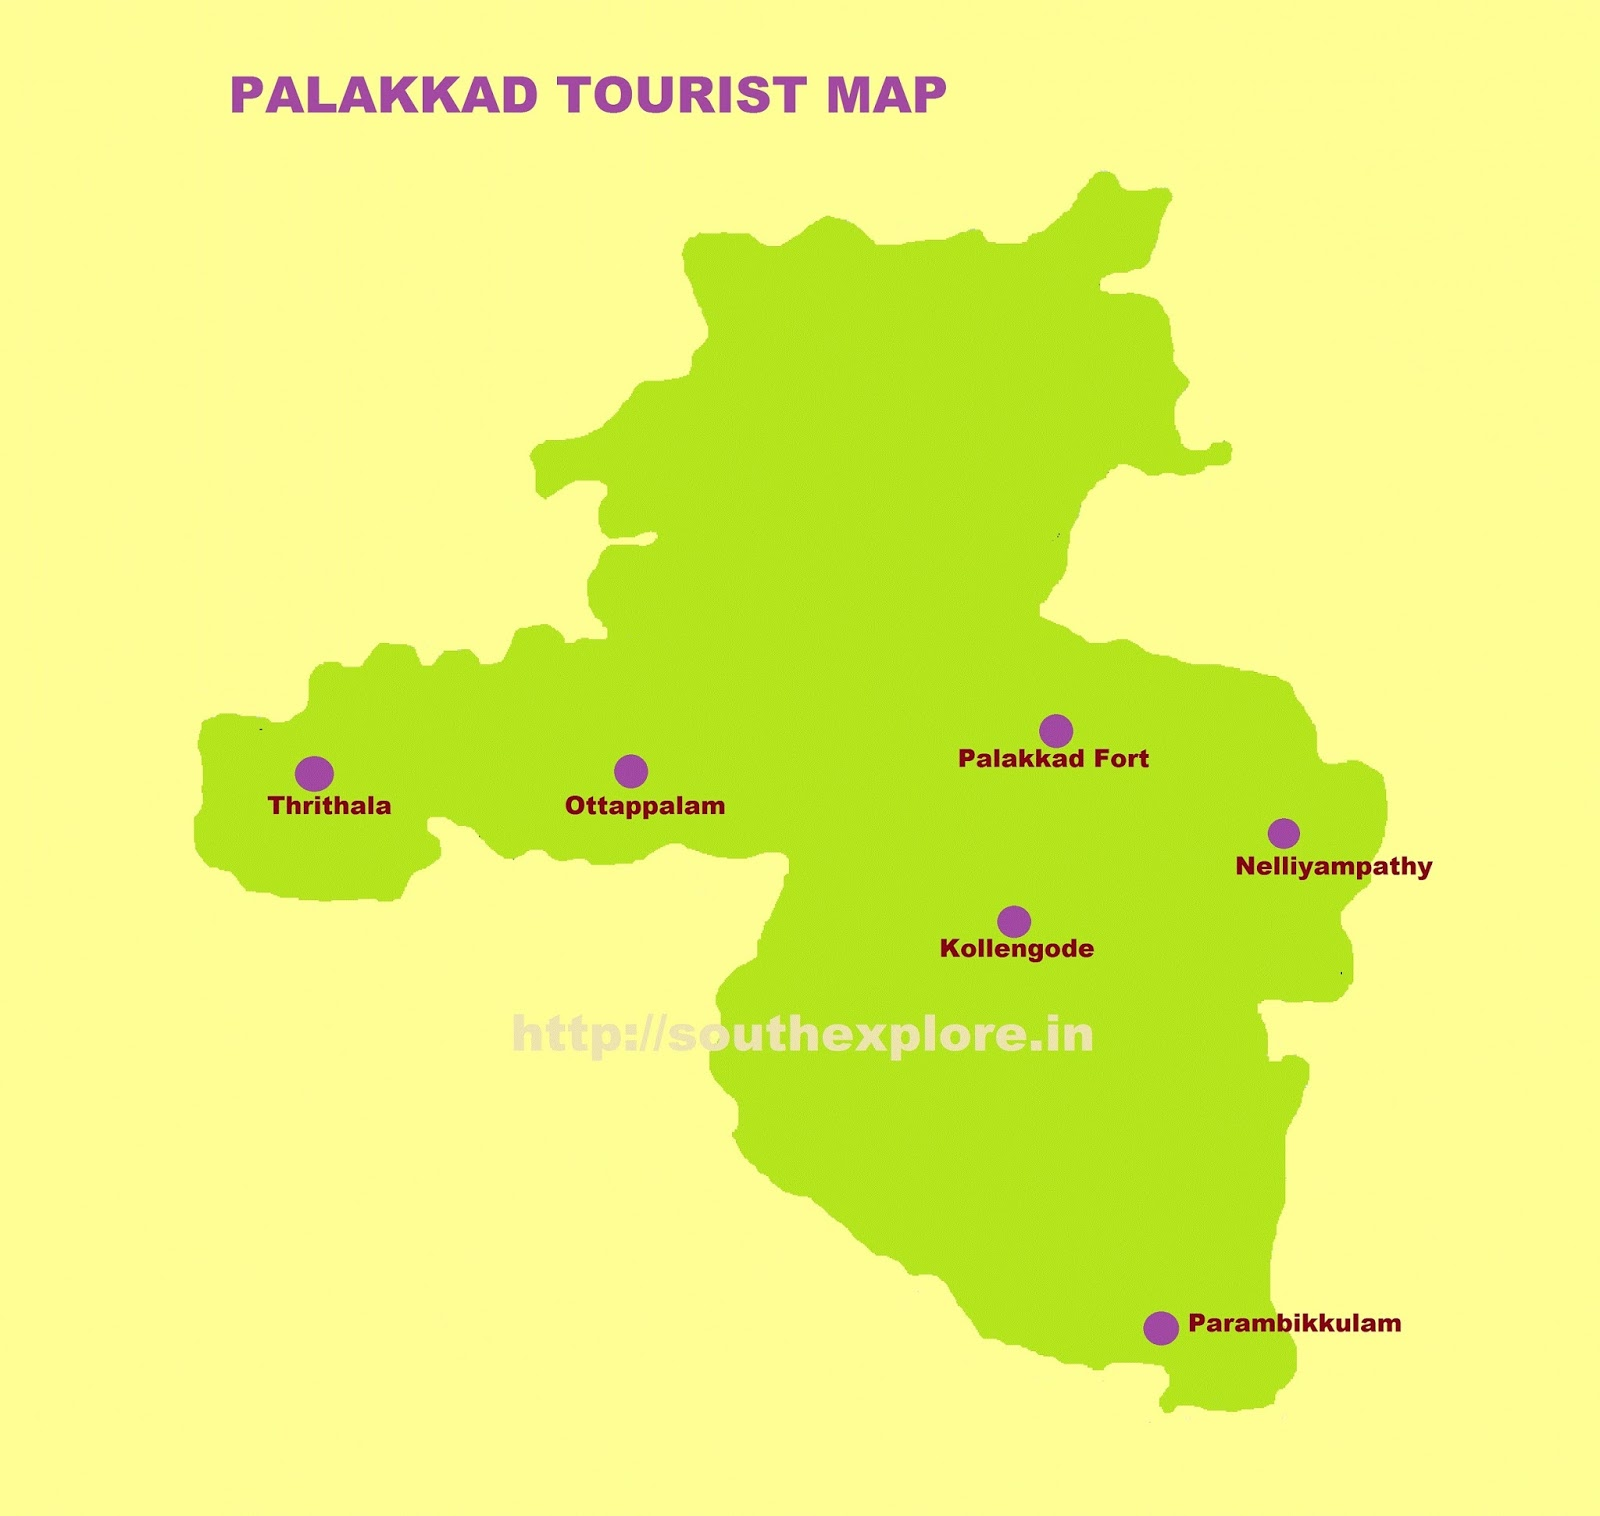 PALAKKAD TOURIST MAP – India Tourist Attractions Map